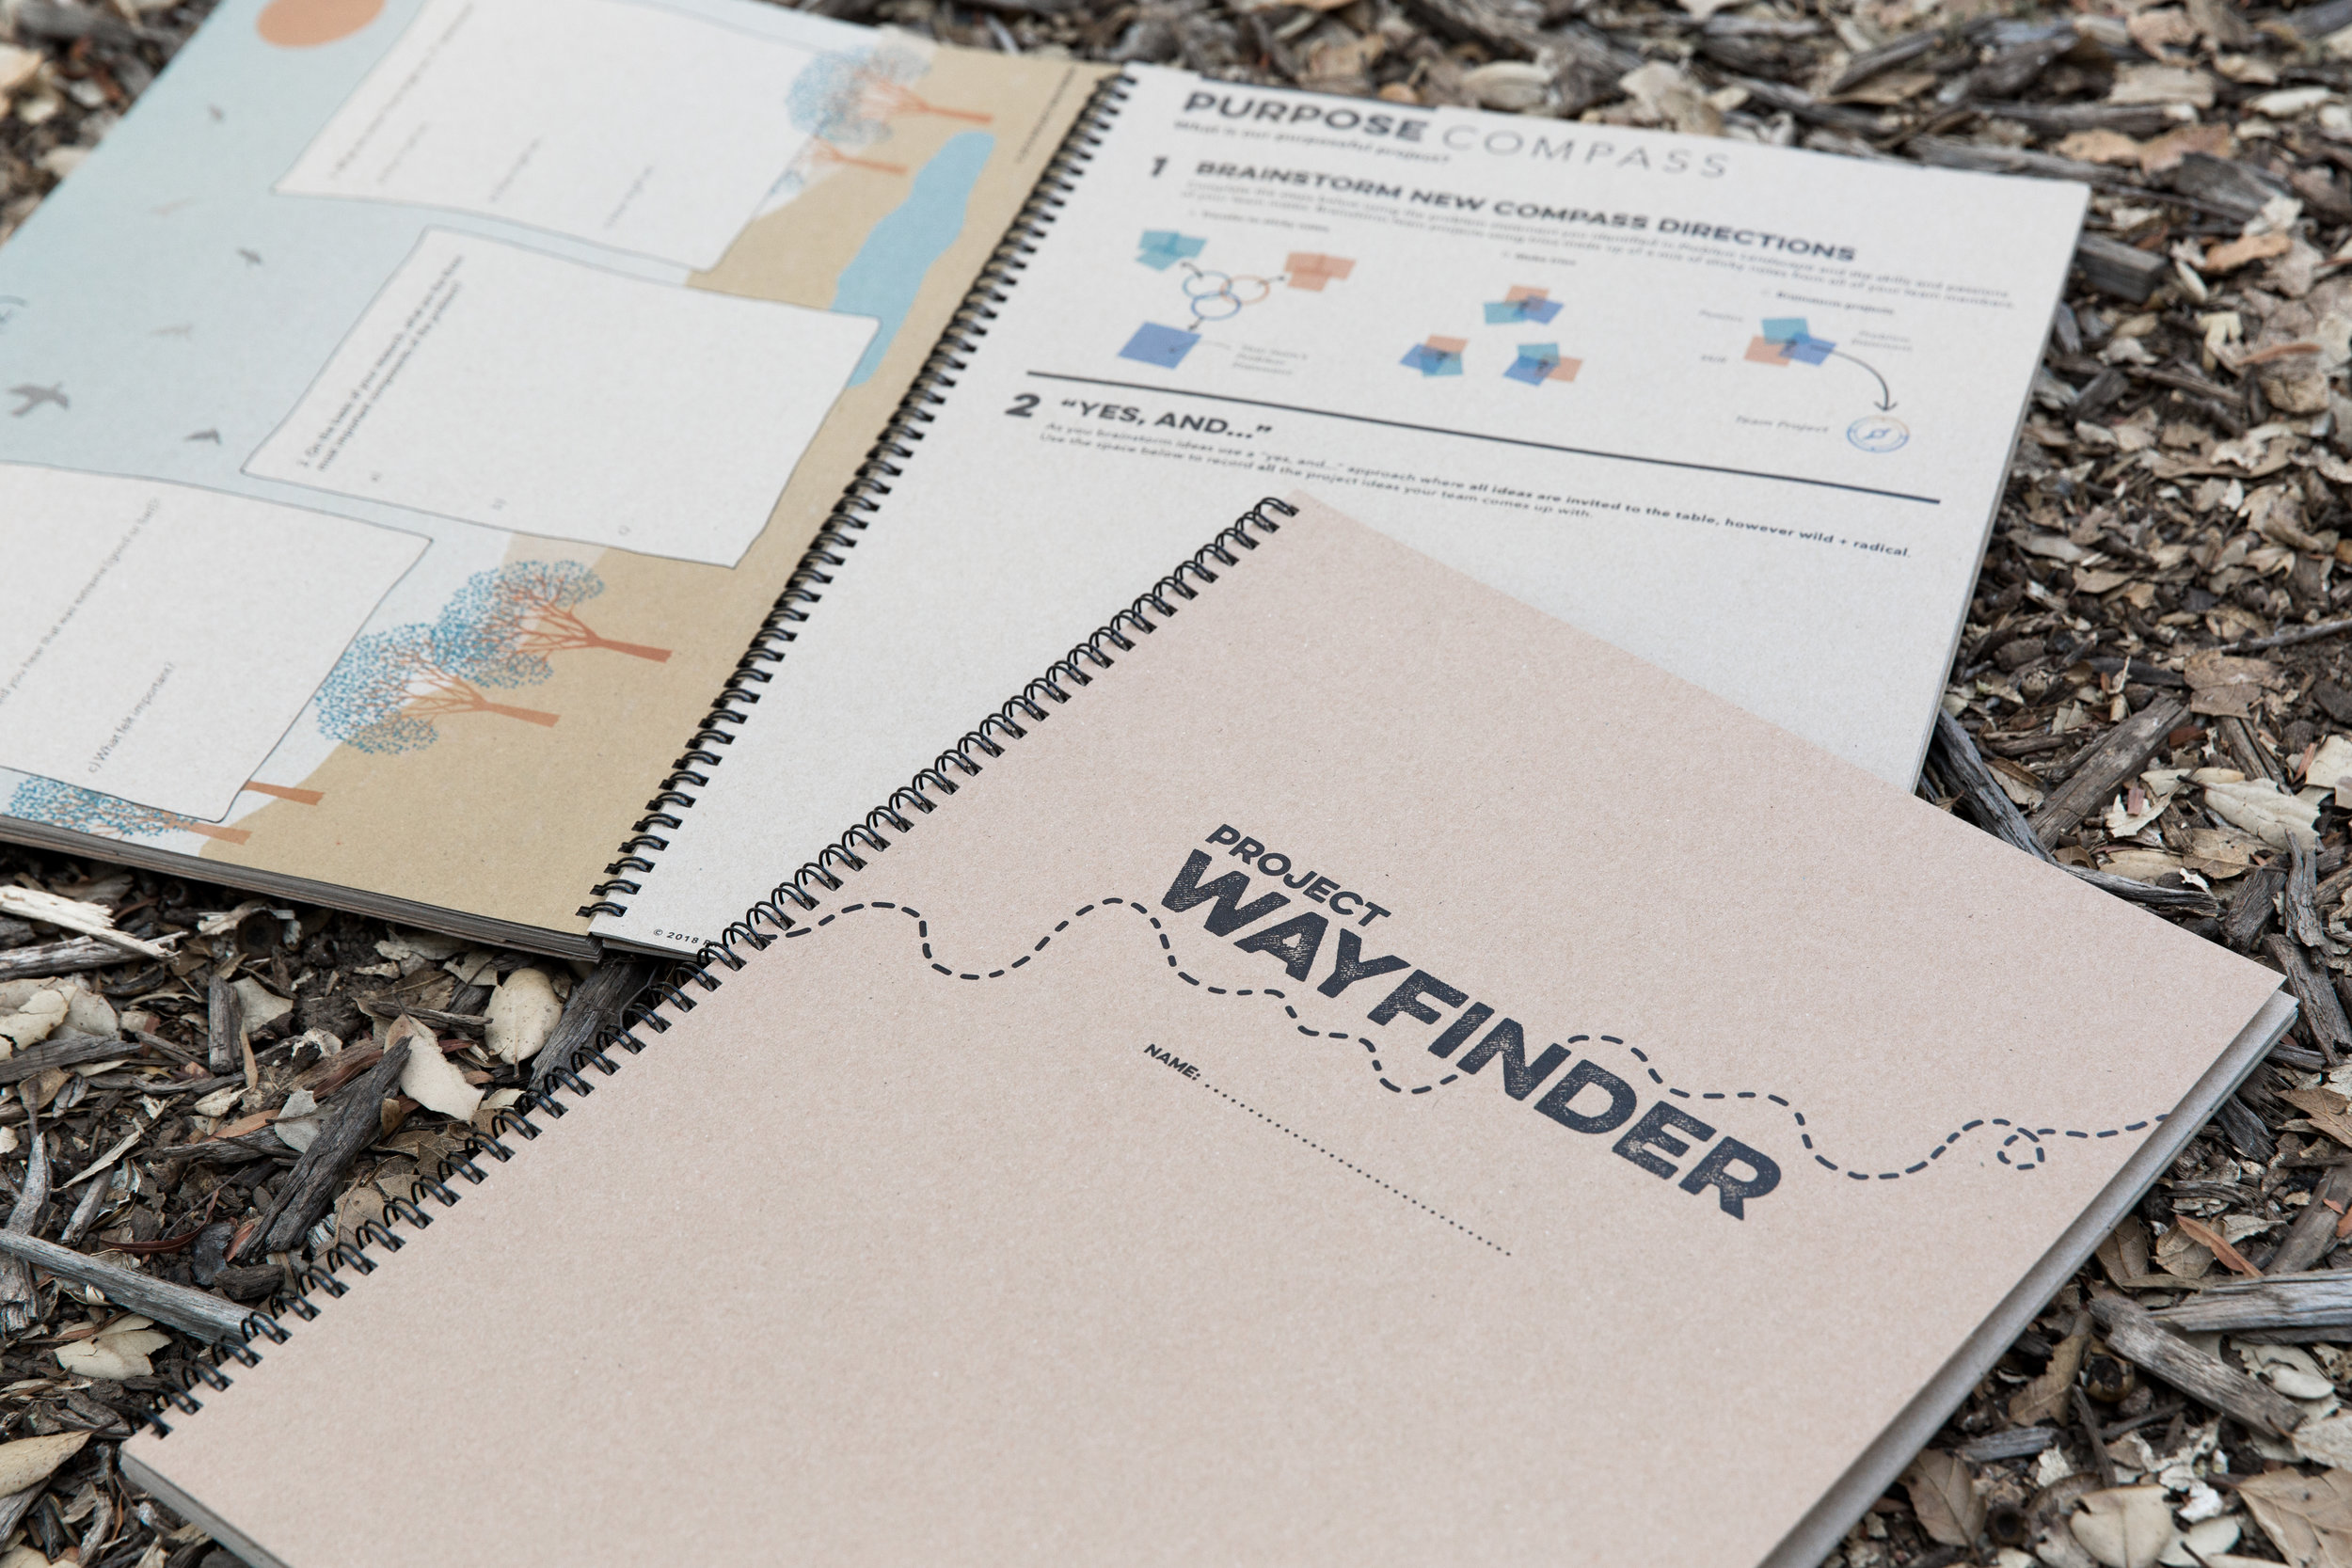 Wayfinder_TeacherTraining_June2018_PatrickBeaudouin_076.jpg